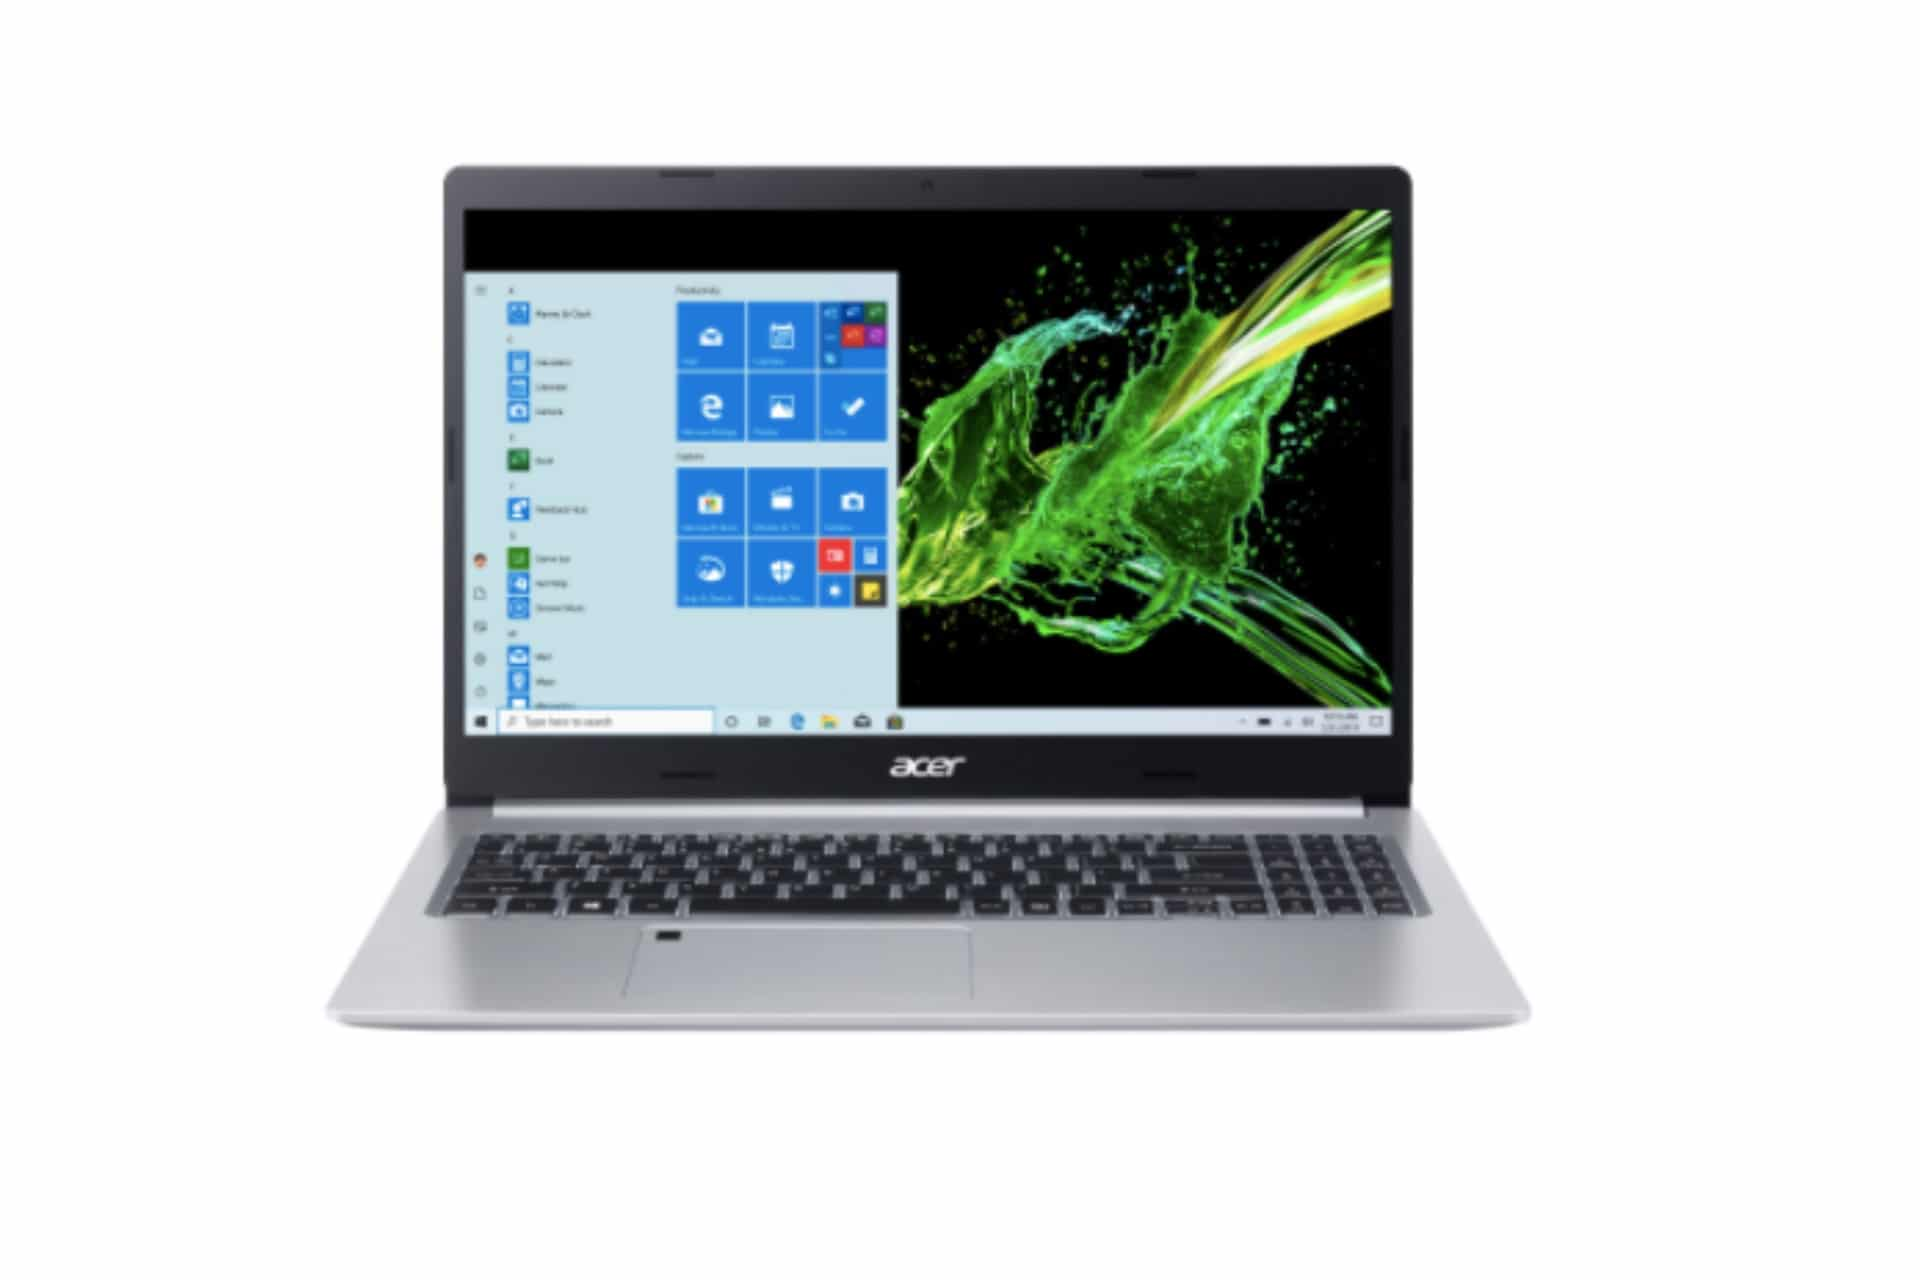 acer laptop open to show screen